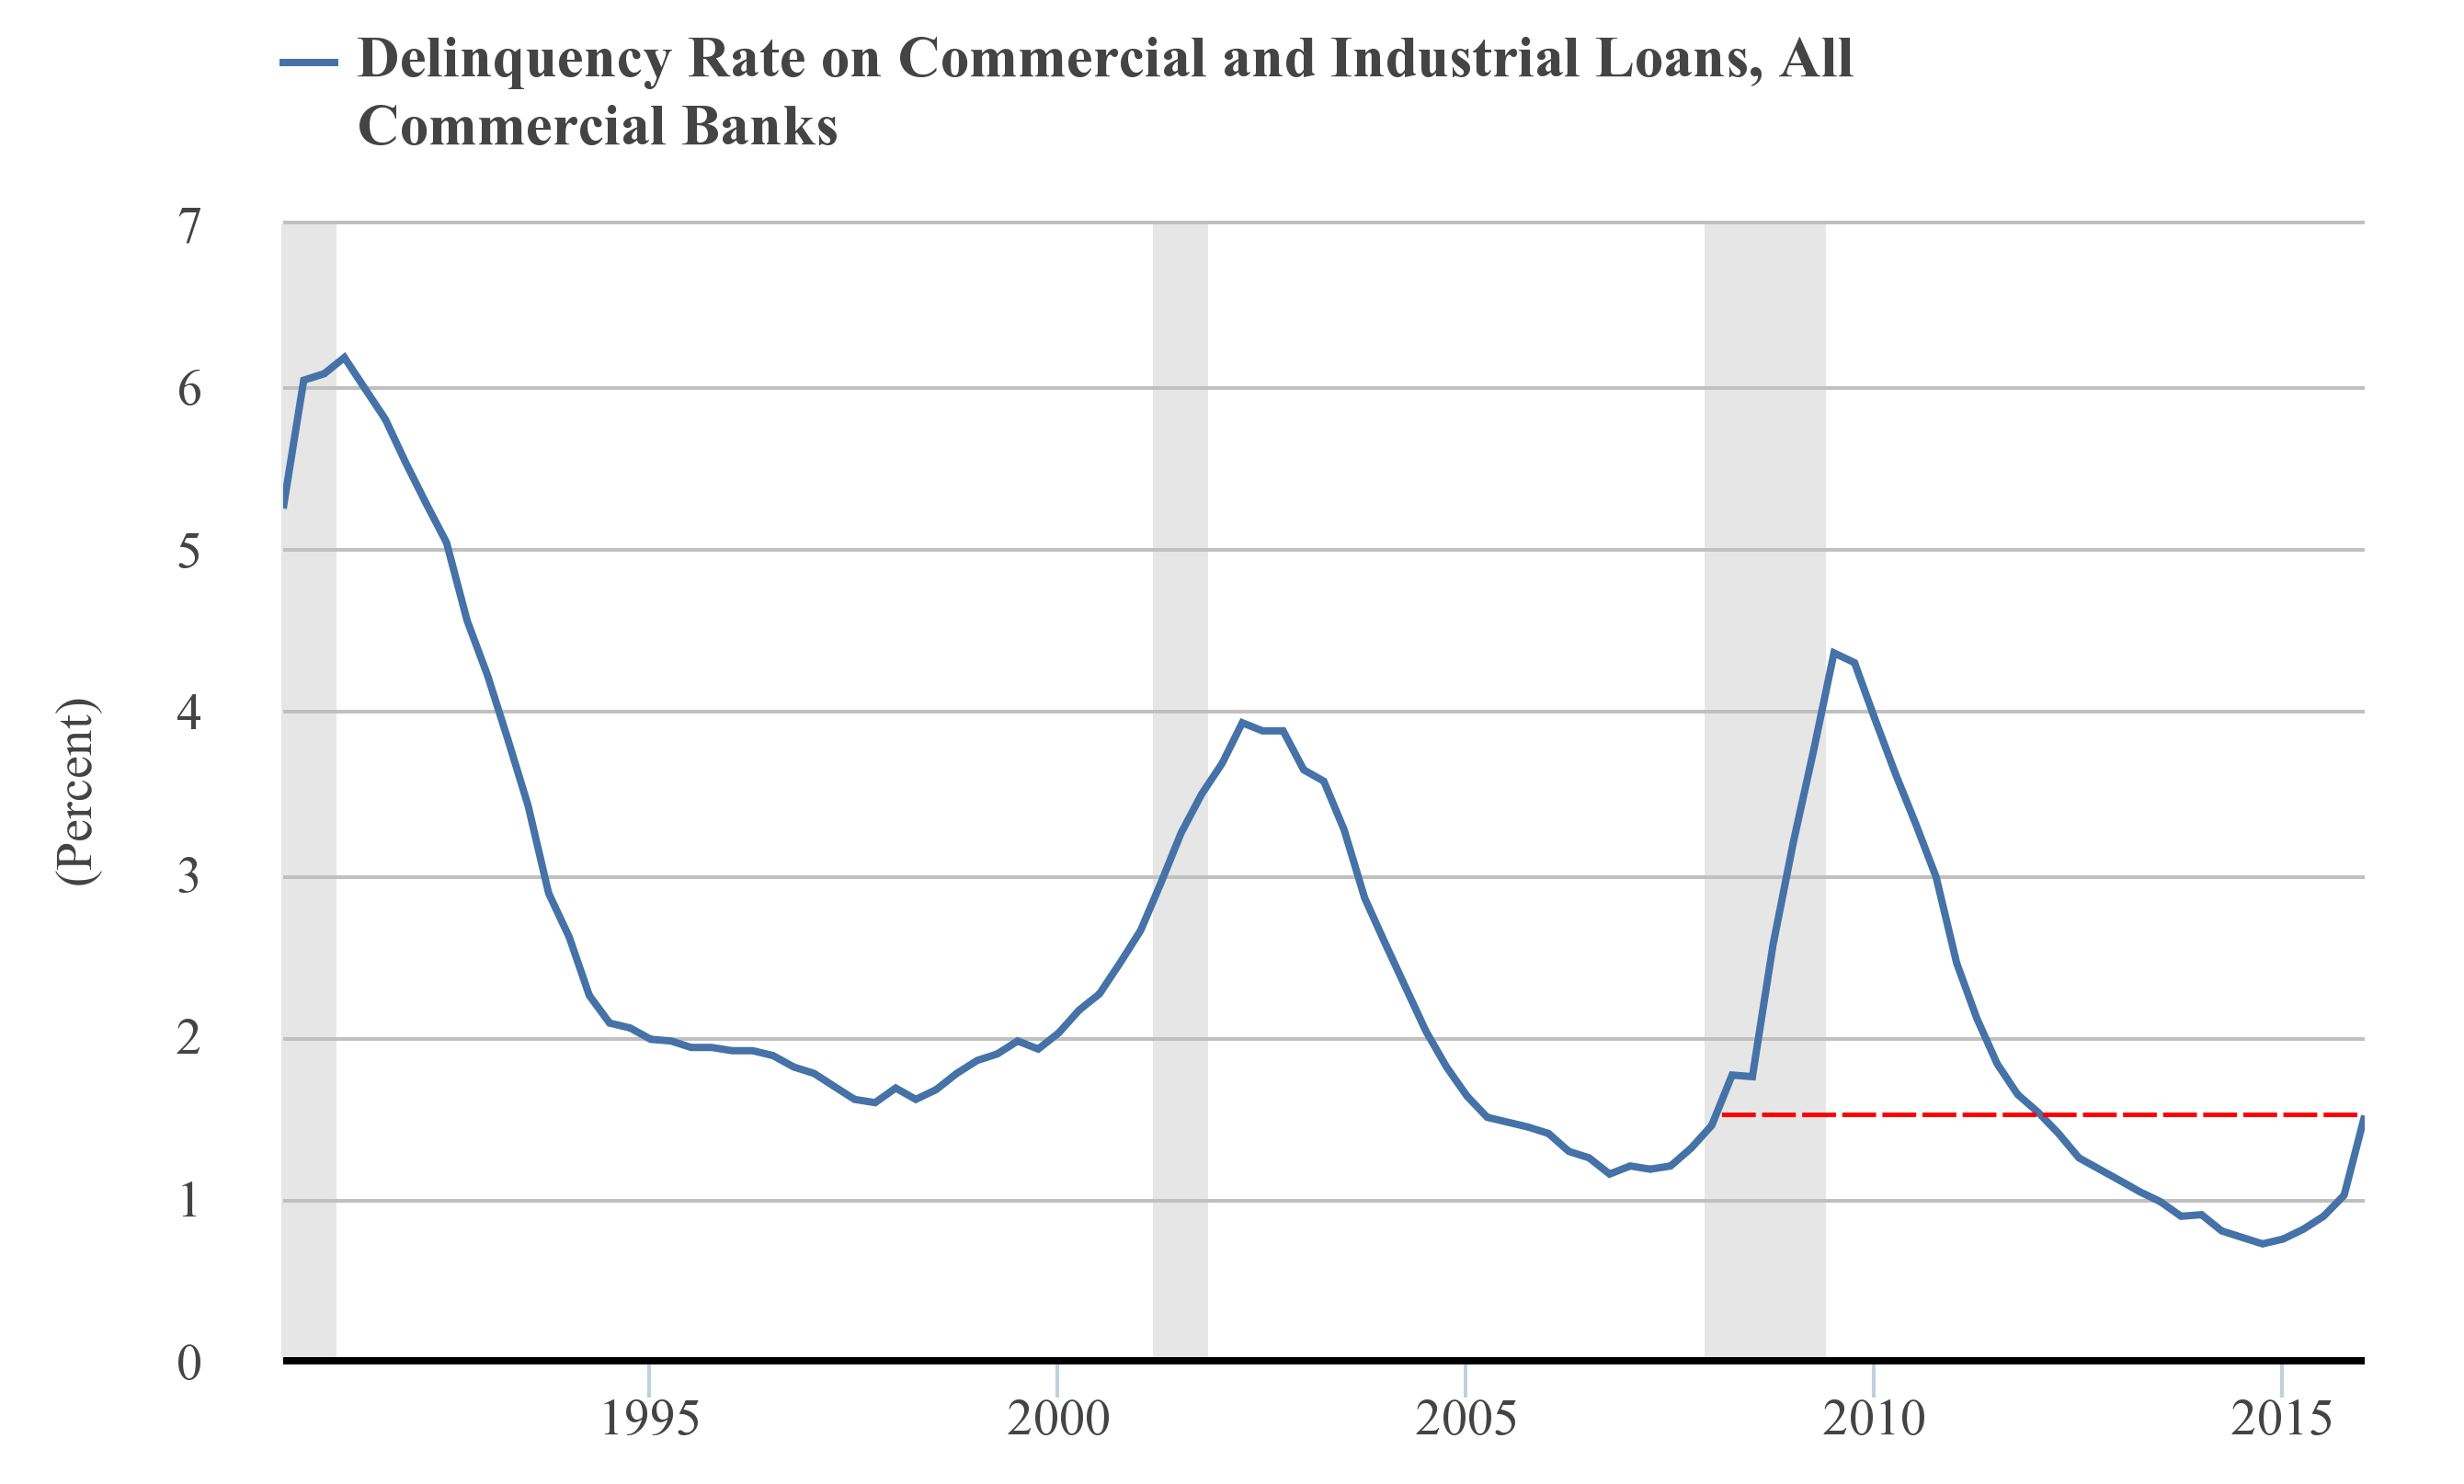 Delinquency rate on bank loans is skyrocketing in the US